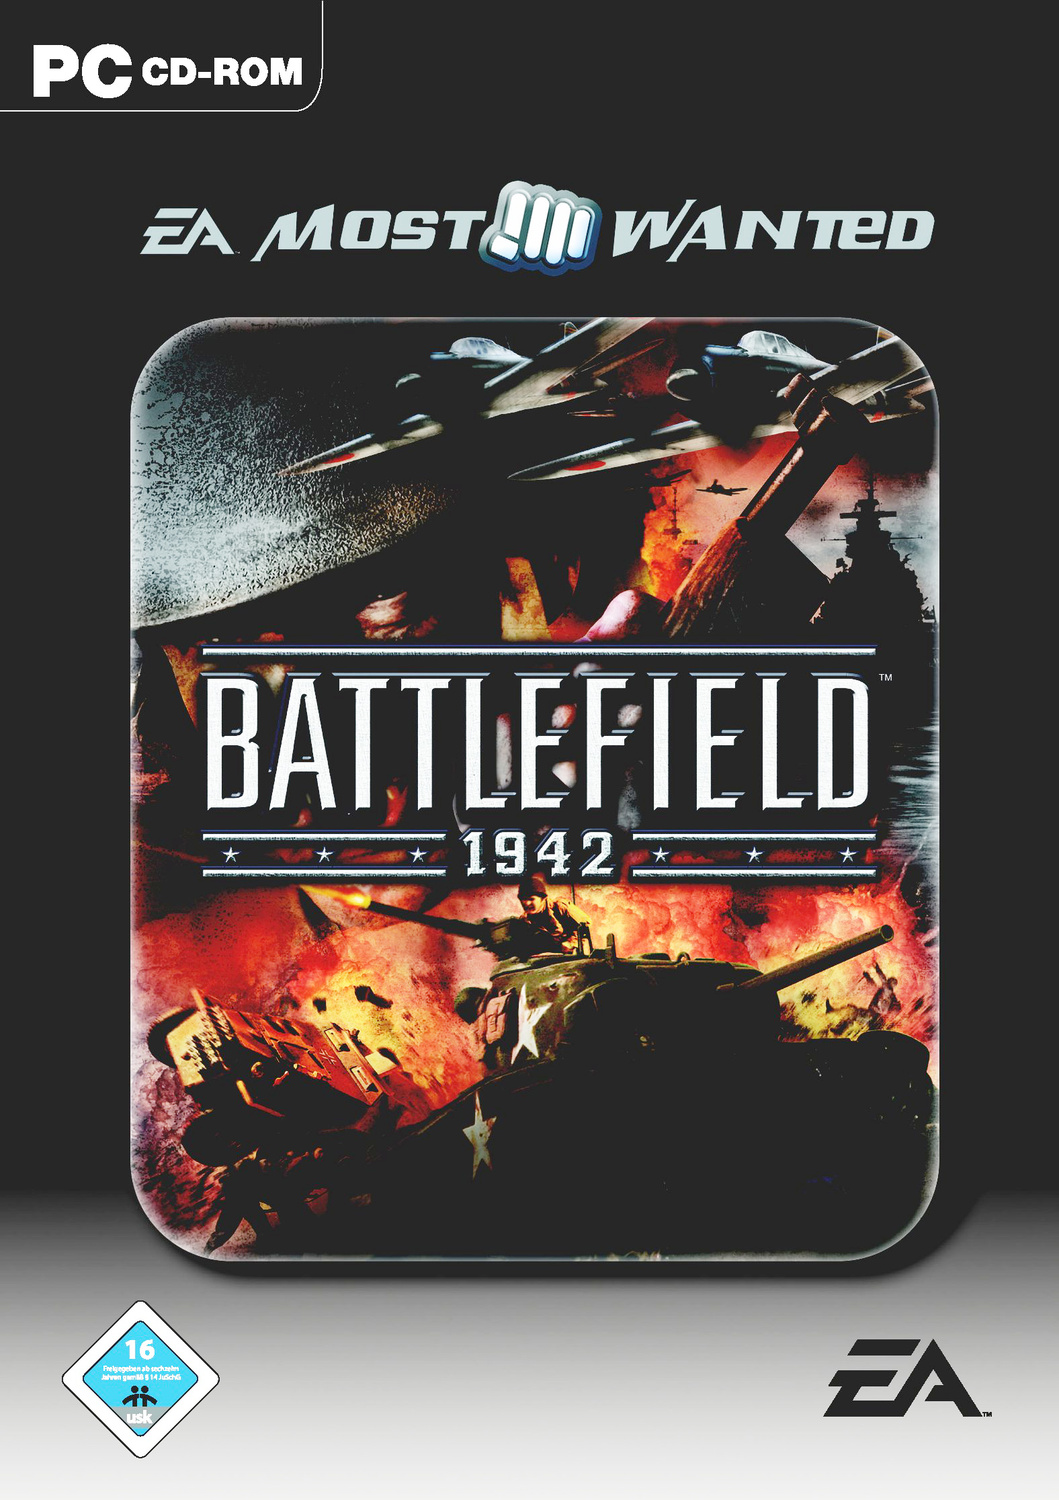 Battlefield 1942 - Most Wanted